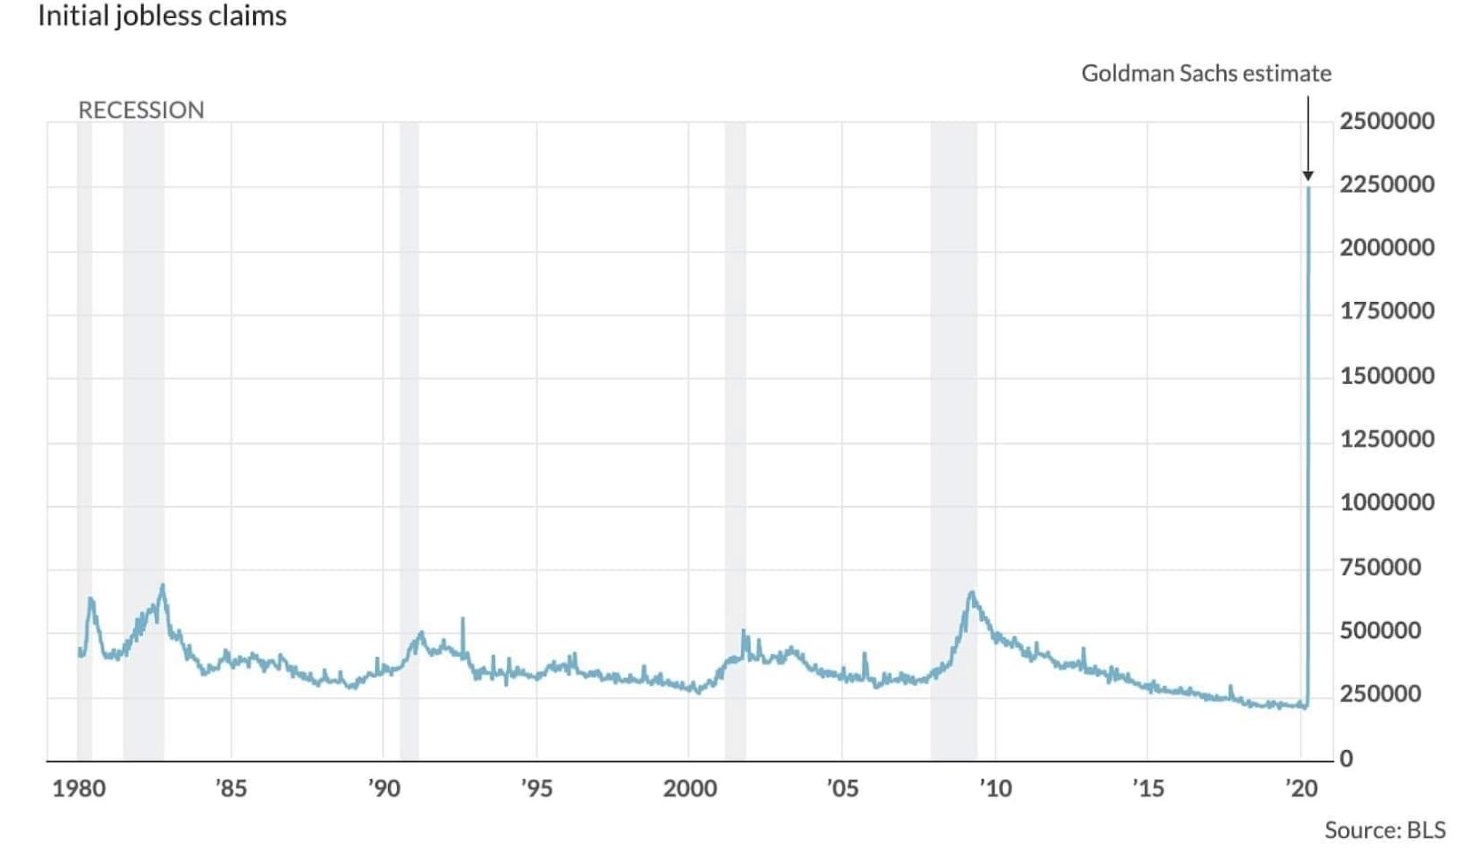 Estimated initial jobless claims 2020 due to coronavirus recession